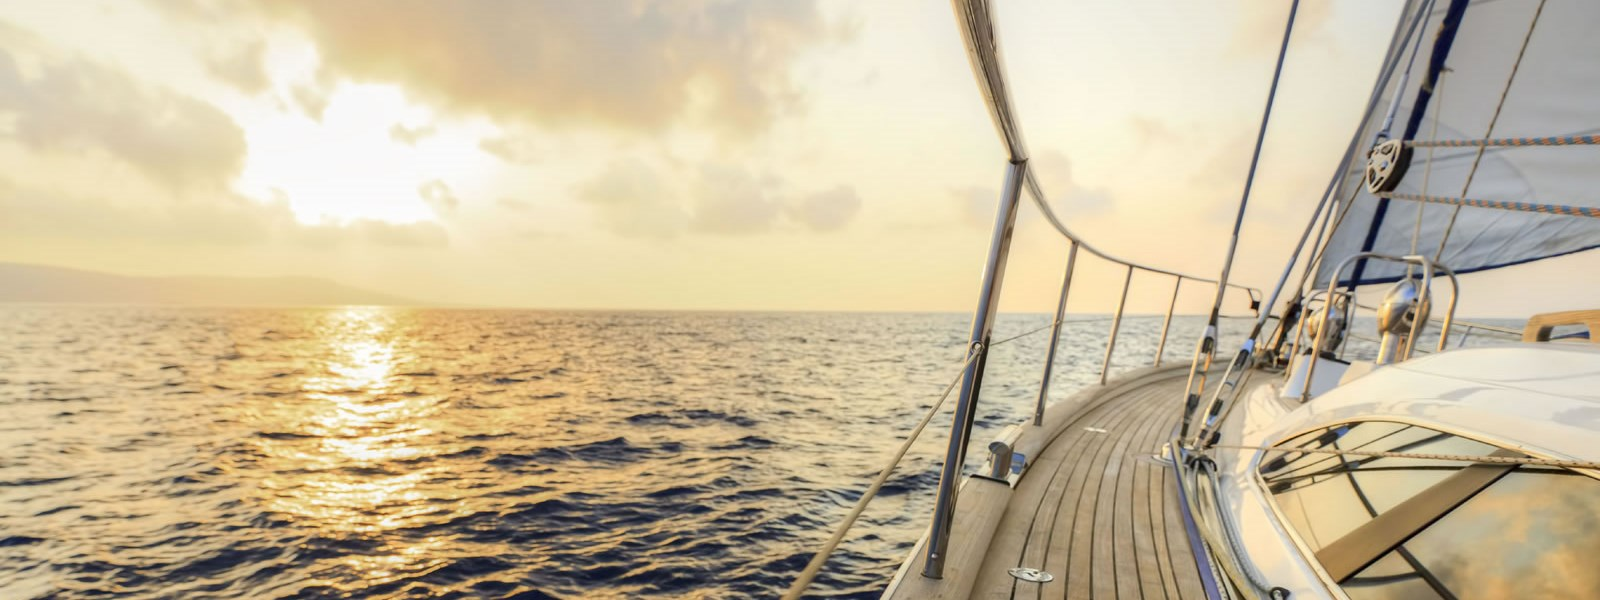 Personal Insurance Choose Sydney Charles for plain sailing personal insurance provision.